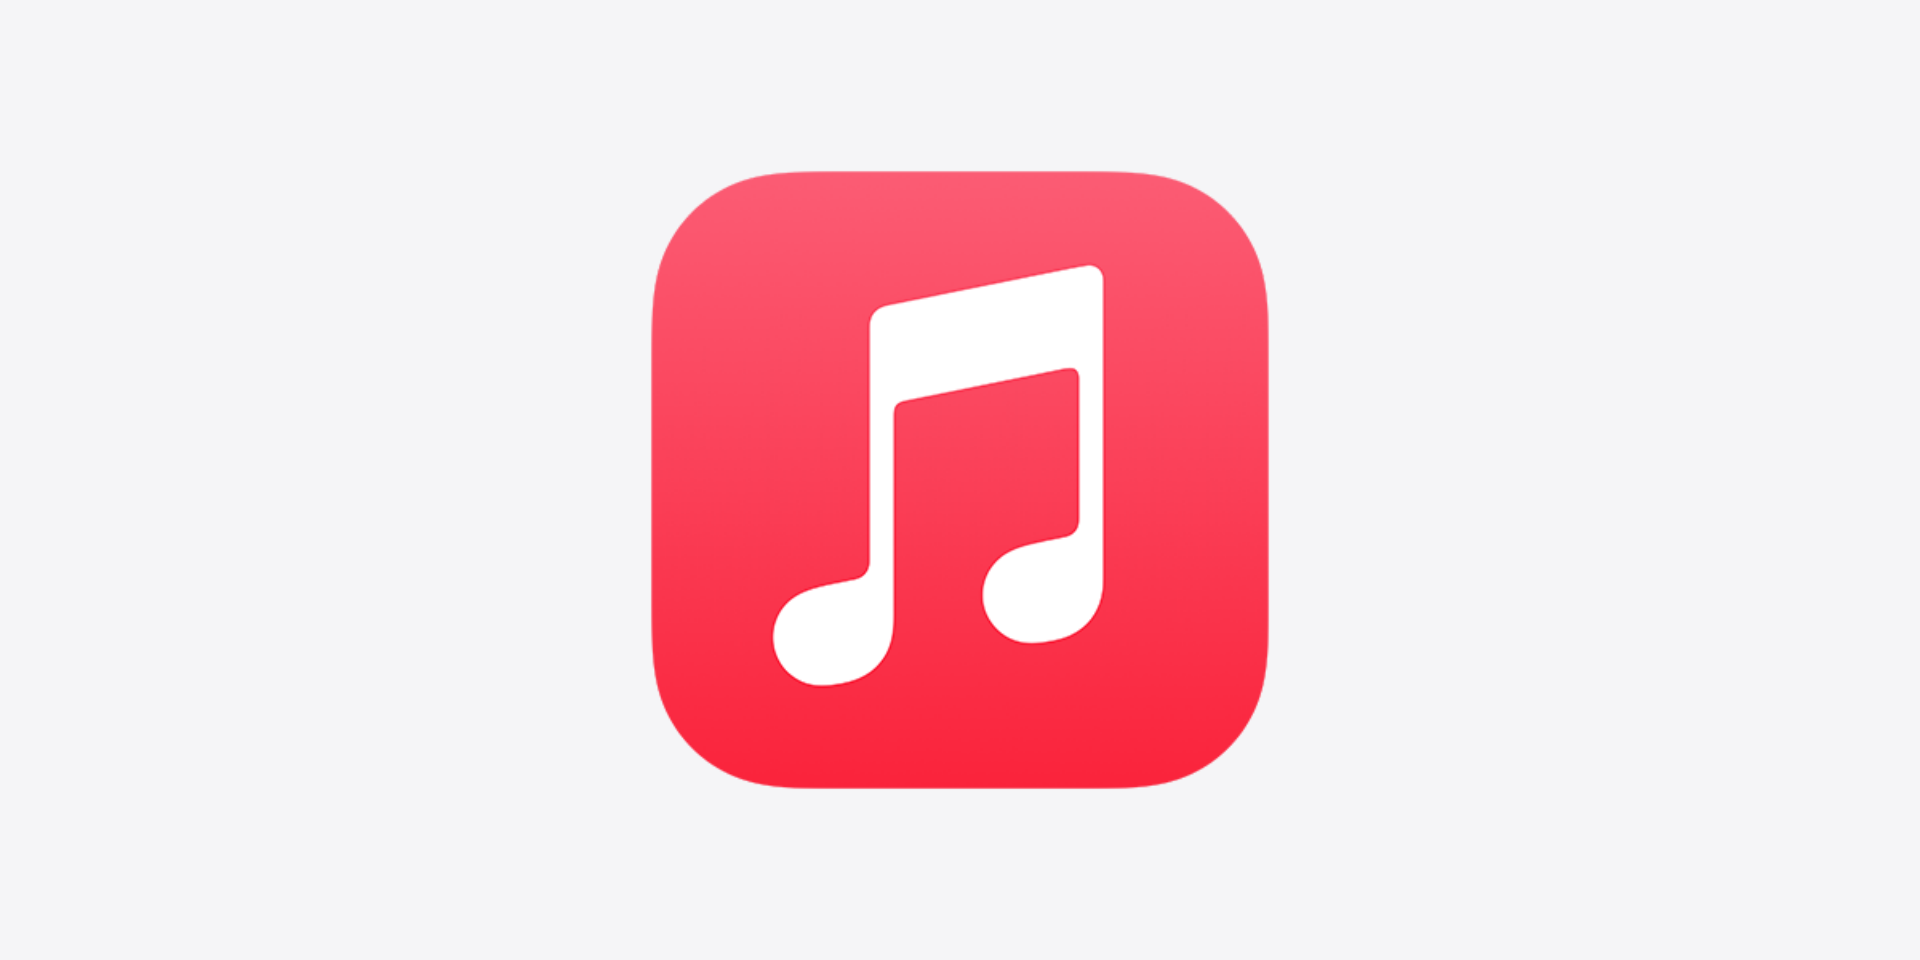 Here's what's new on Apple Music with iOS 15: Spatial Audio, SharePlay, new 'Memories' feature, and more